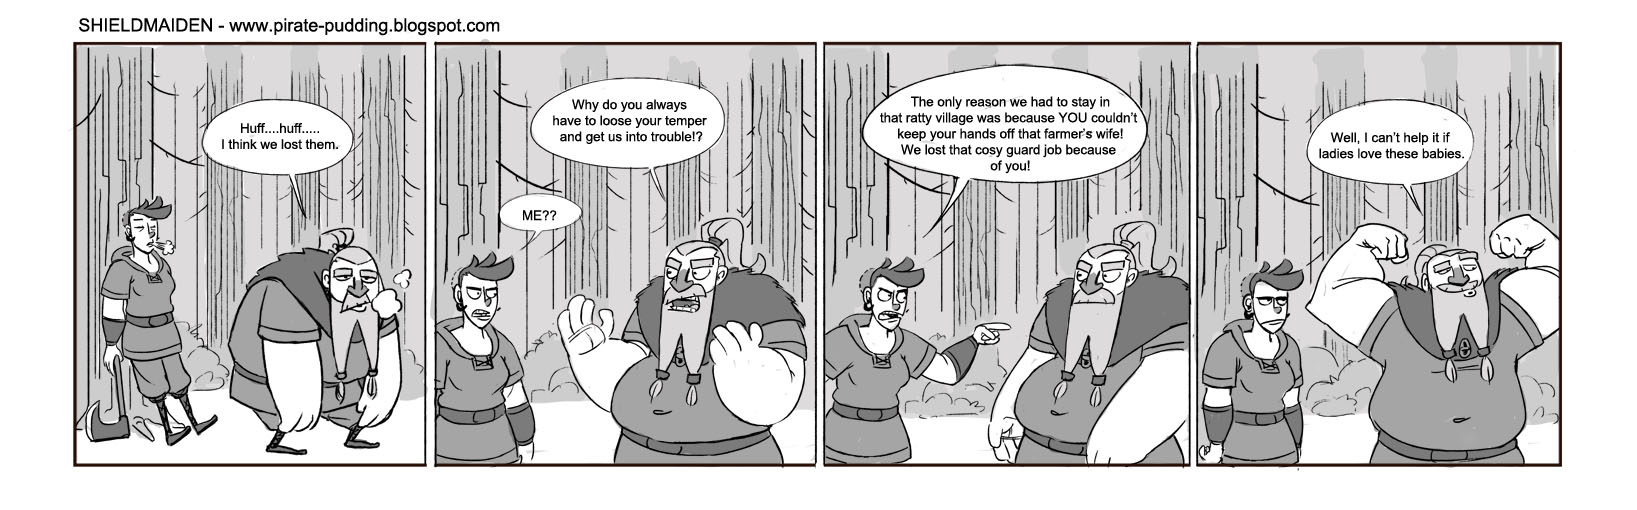 Shieldmaiden comic 004